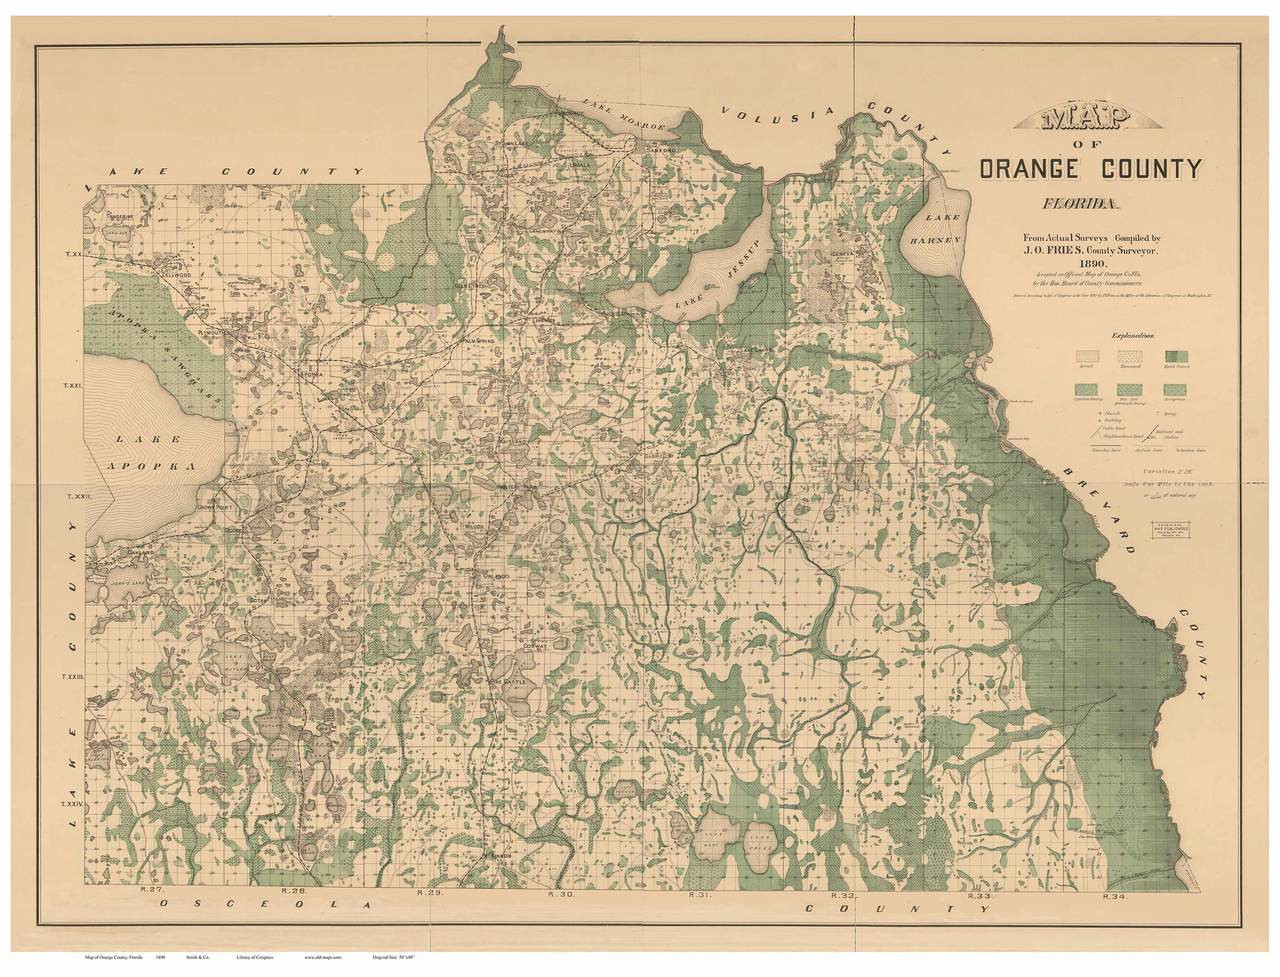 Orange County Florida 1890 - Old Map Reprint - OLD MAPS on